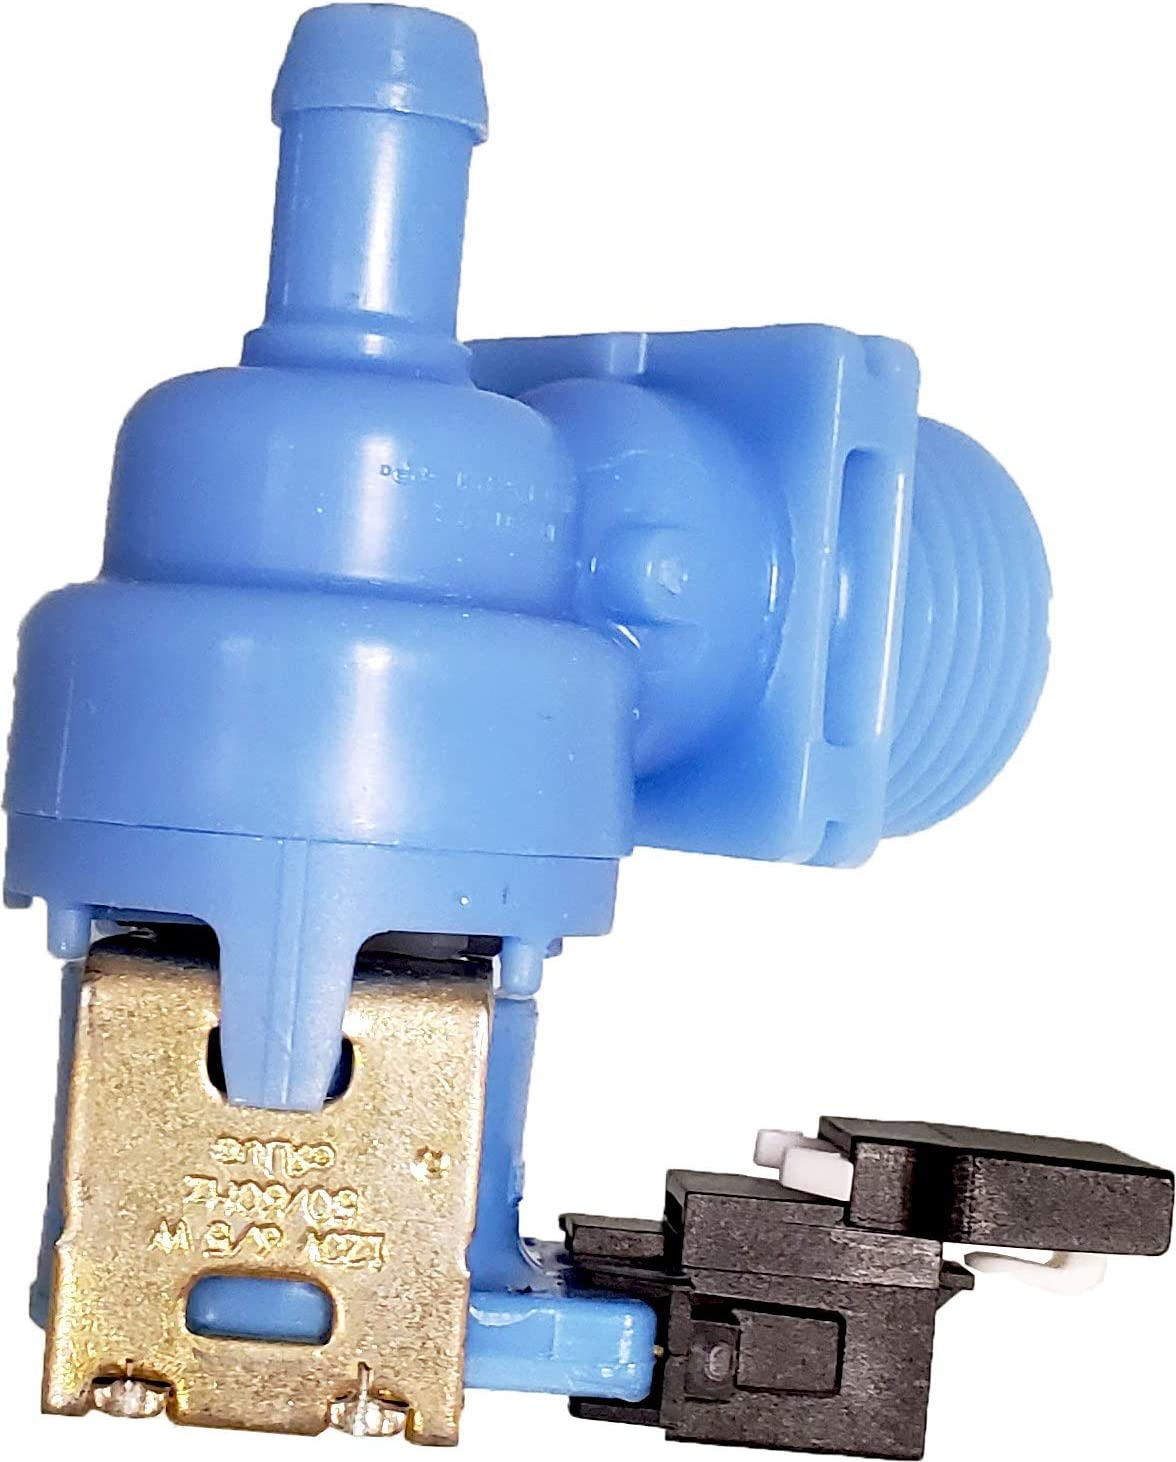 NEW W10327250 Refrigerator Water Inlet Valve for Whirlpool by Robertshaw